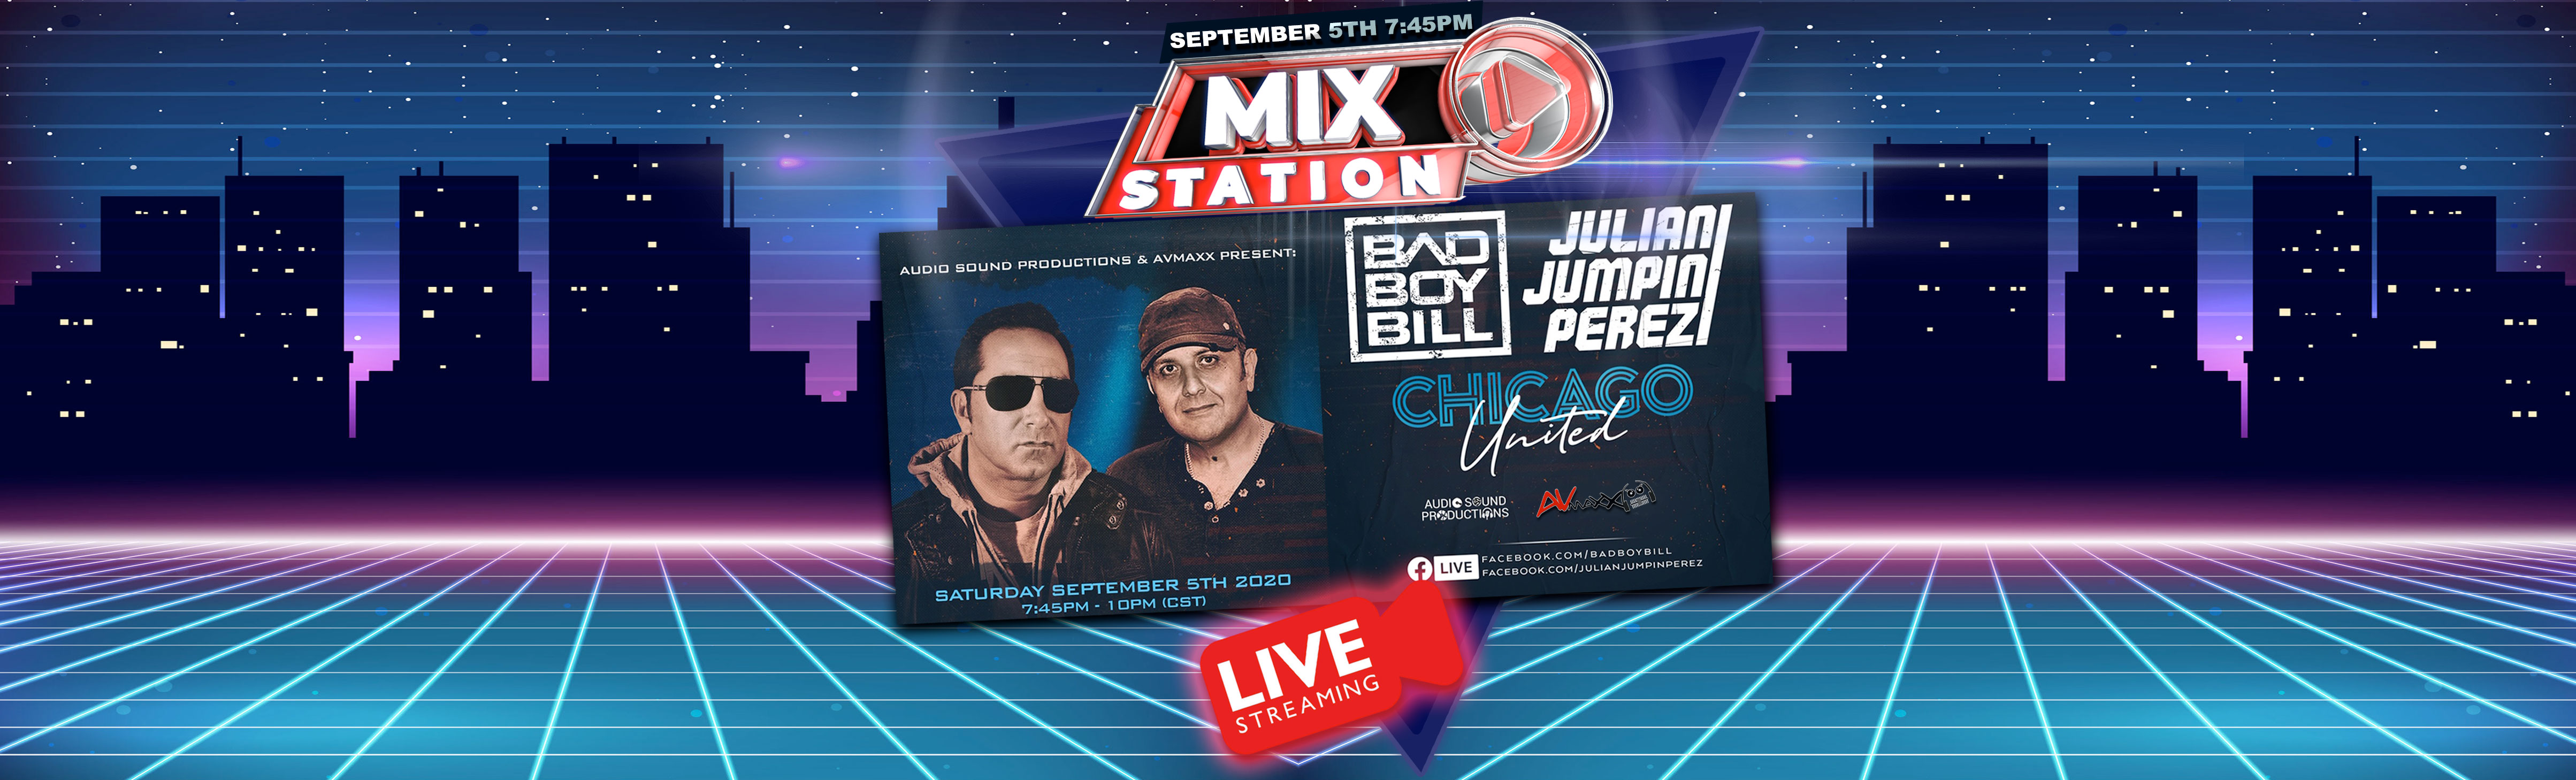 Bad Boy Bill & Julian Jumping Perez Live Stream